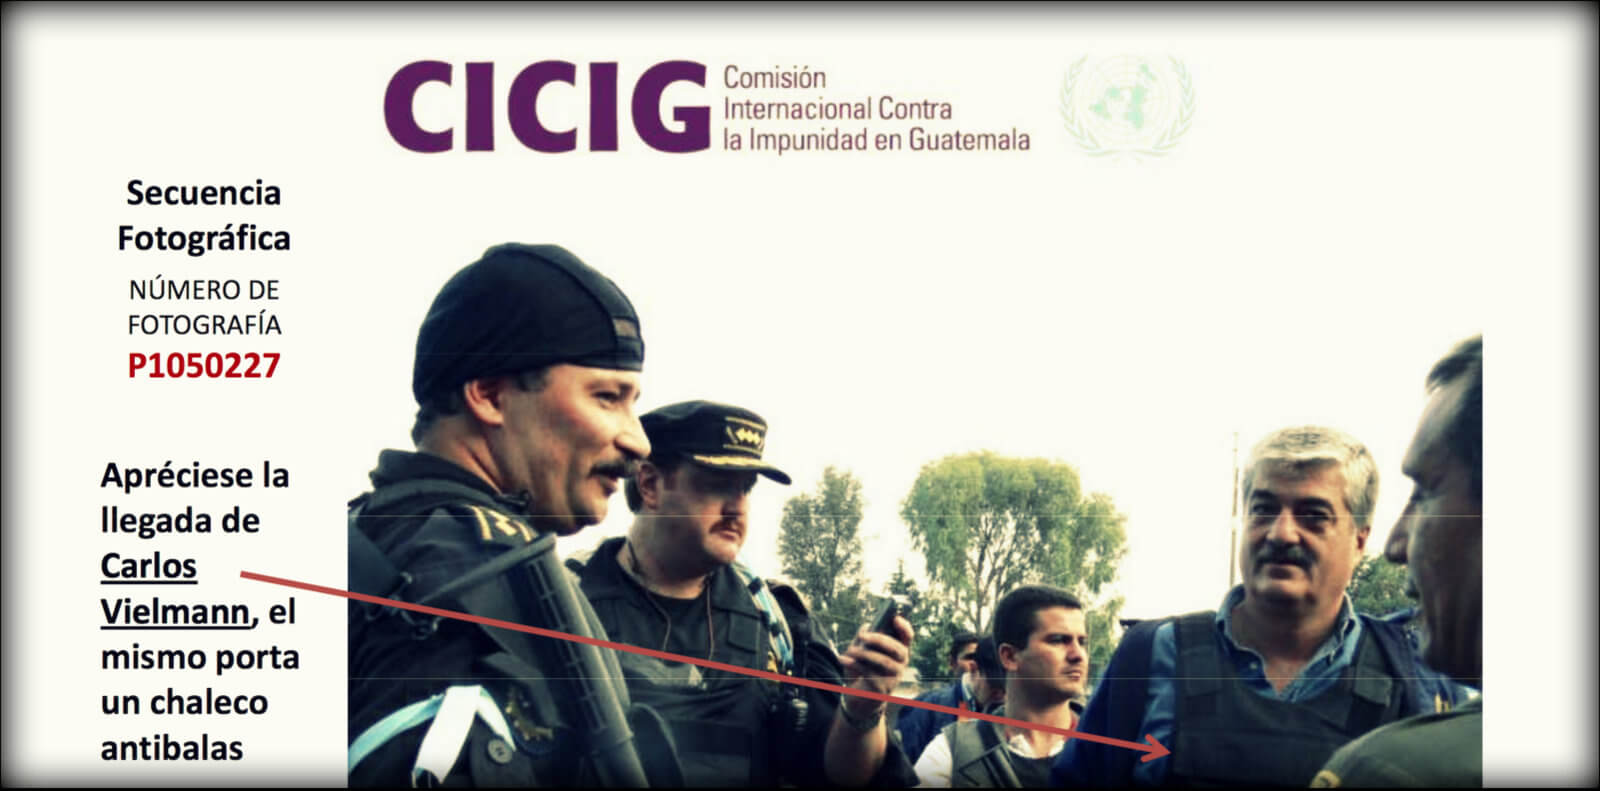 Guatemala Elites and Organized Crime: The CICIG